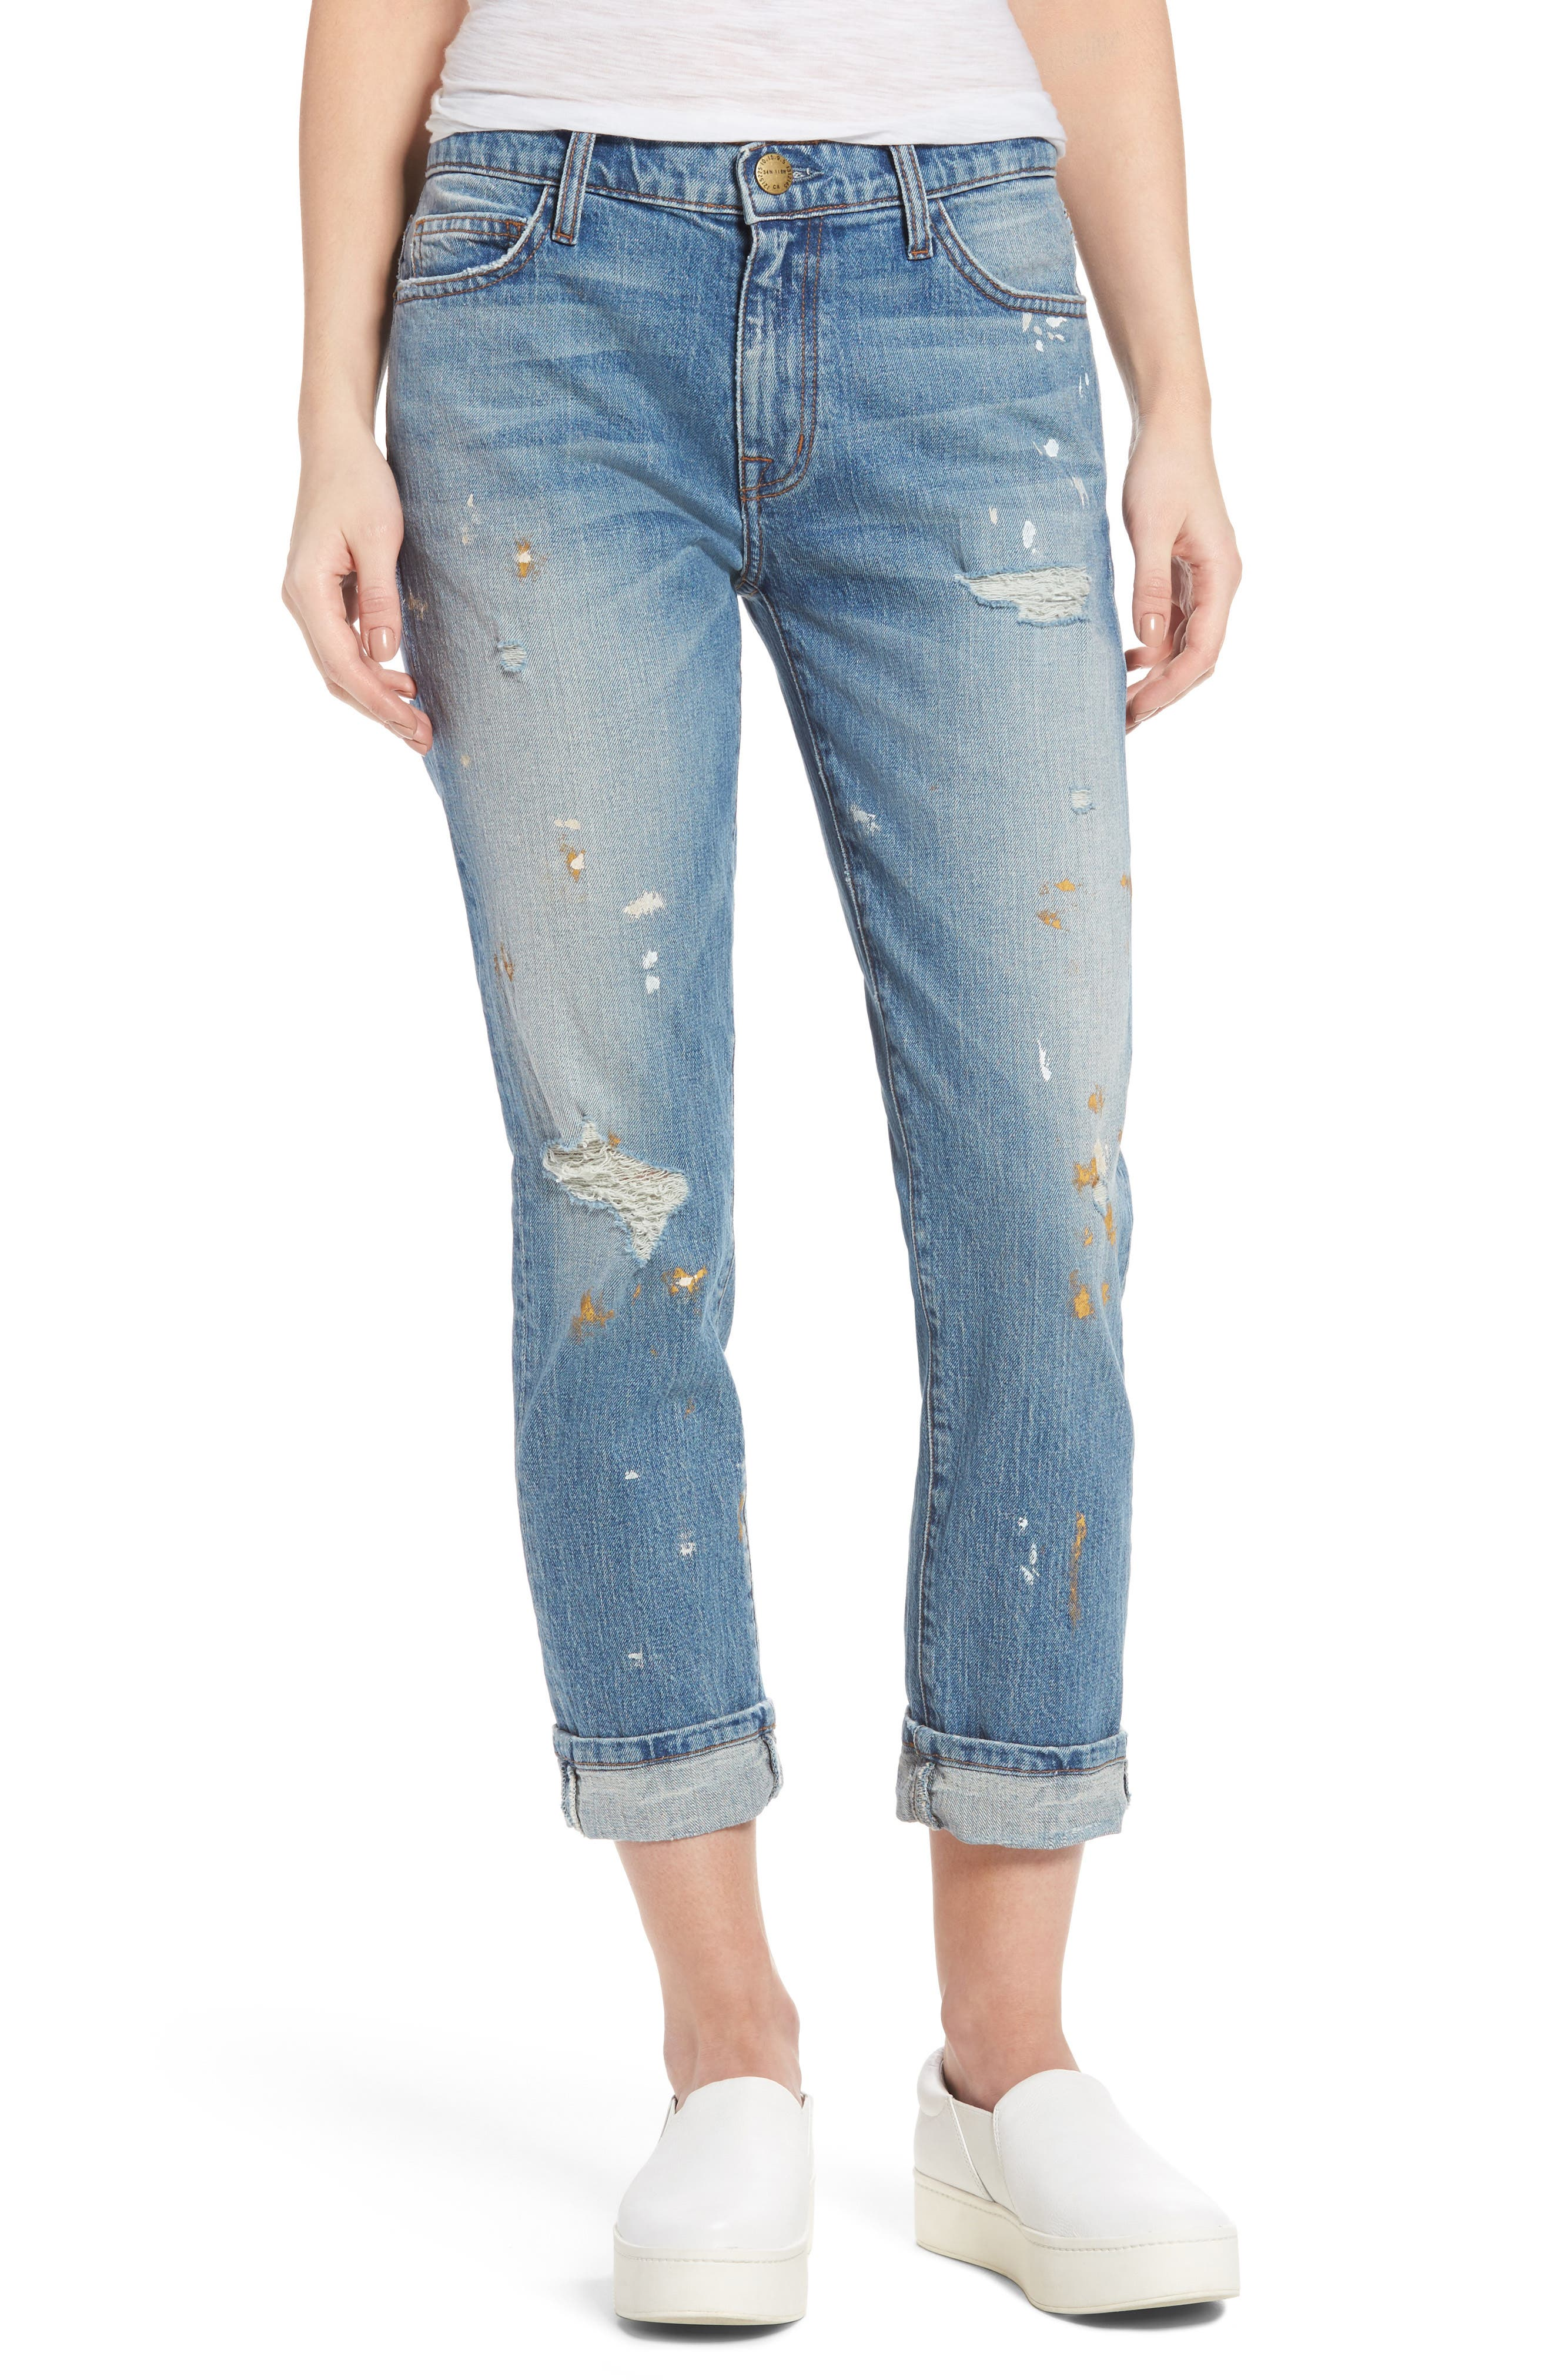 CURRENT/ELLIOTT Fling Distressed Rolled Jeans